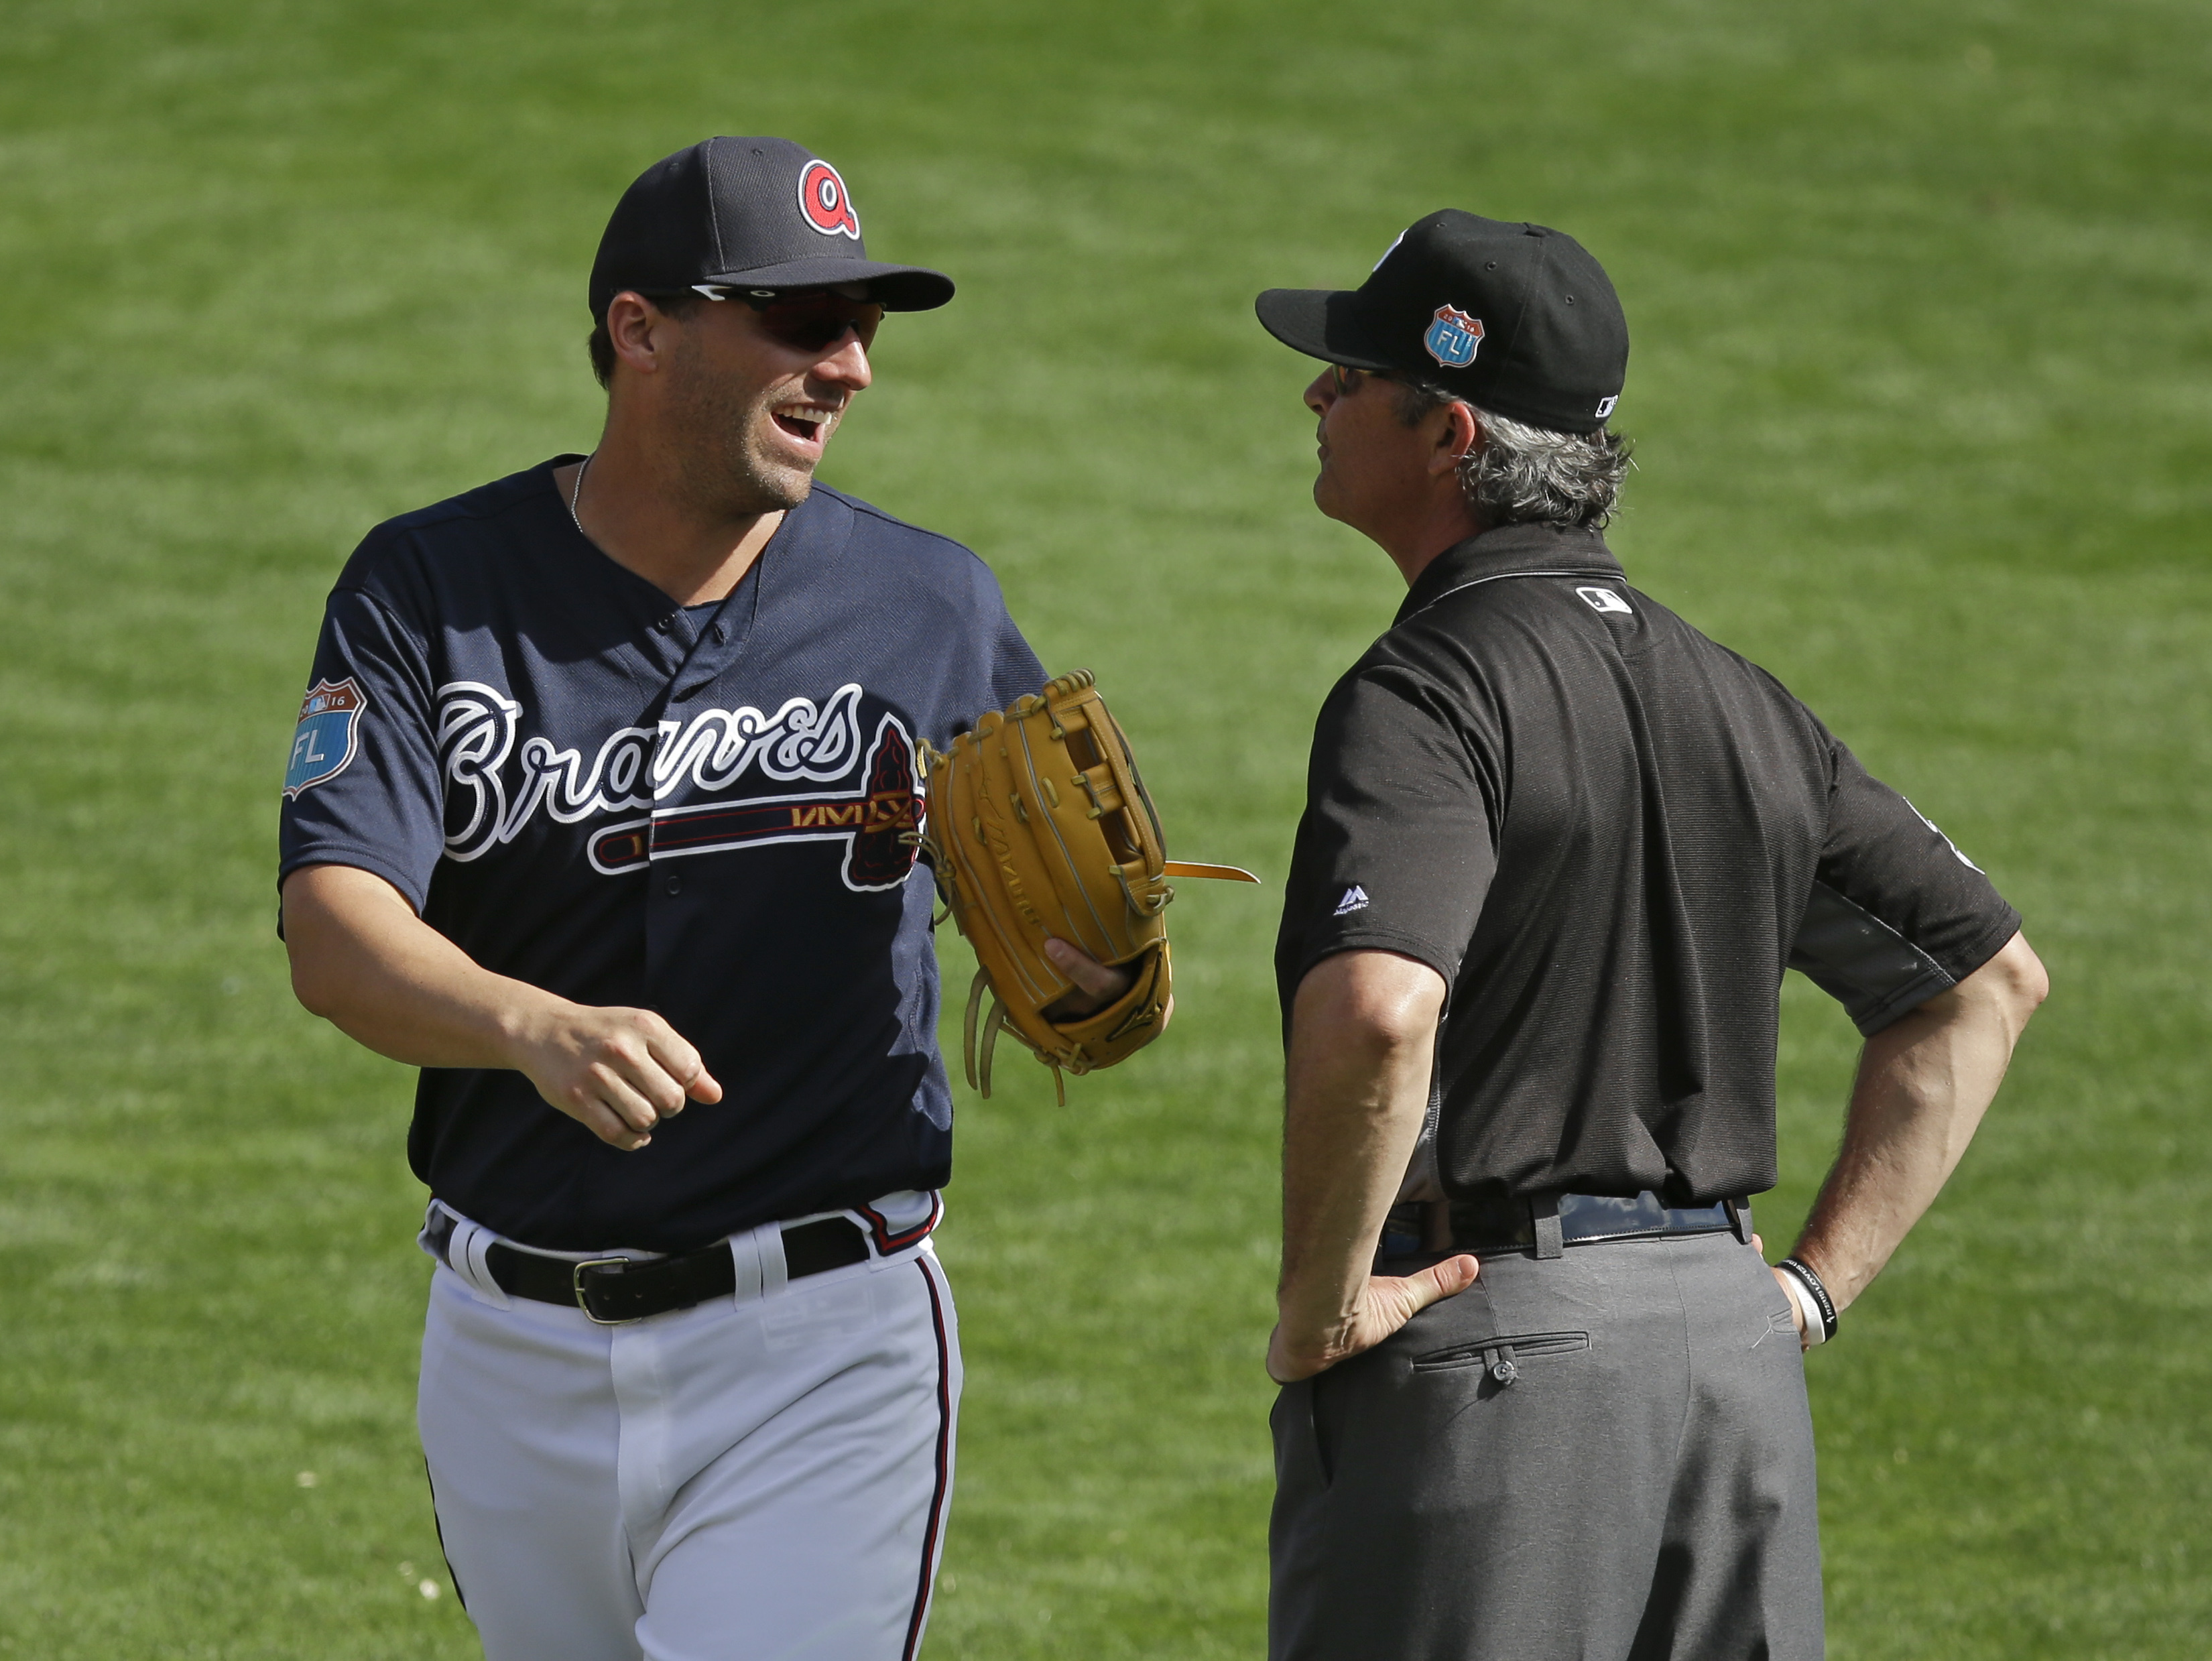 Atlanta Braves Jeff Francoeur chats with umpire Paul Nauert between innings in a spring training baseball game against the New York Mets, Tuesday, March 8, 2016, in Kissimmee, Fla. (AP Photo/John Raoux)